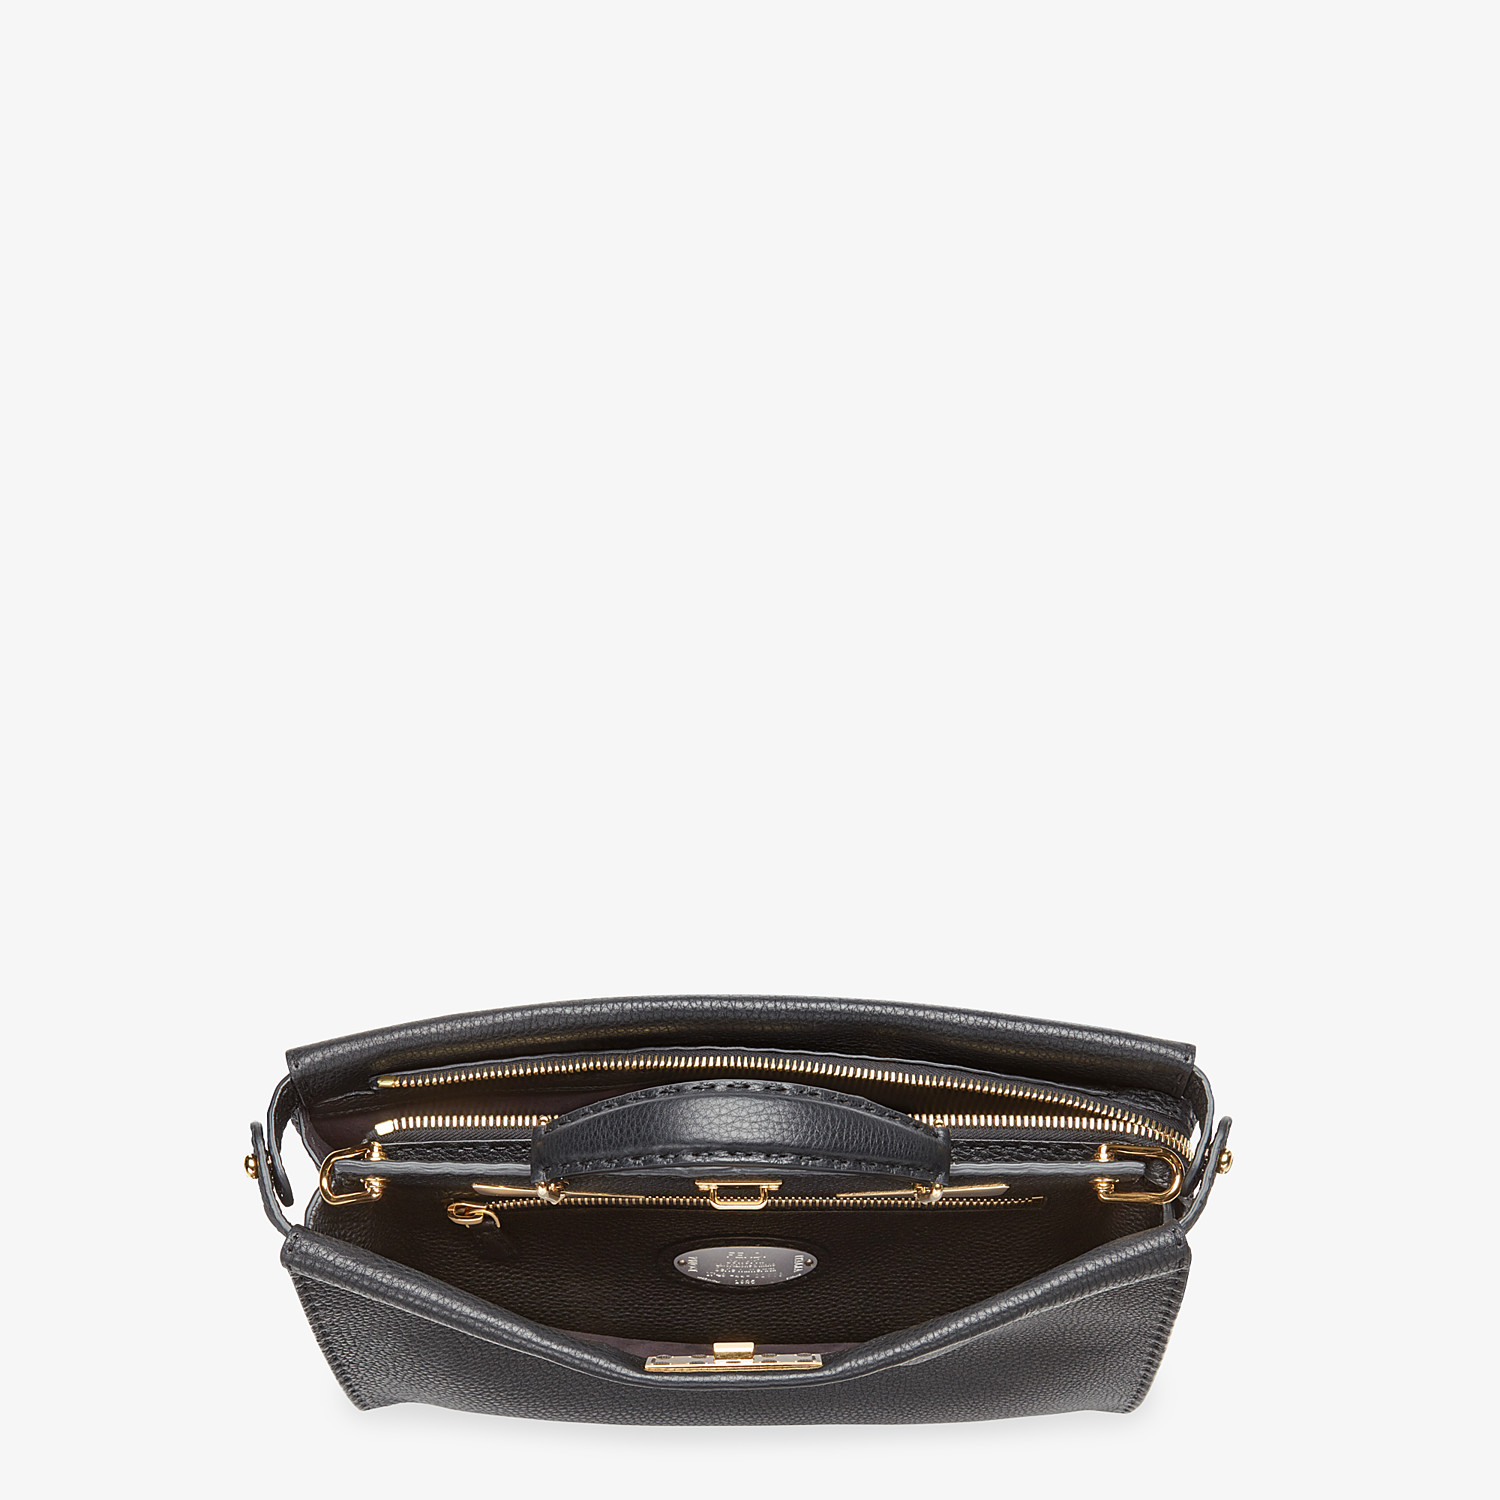 FENDI PEEKABOO ICONIC FIT - Black Roman leather bag - view 4 detail